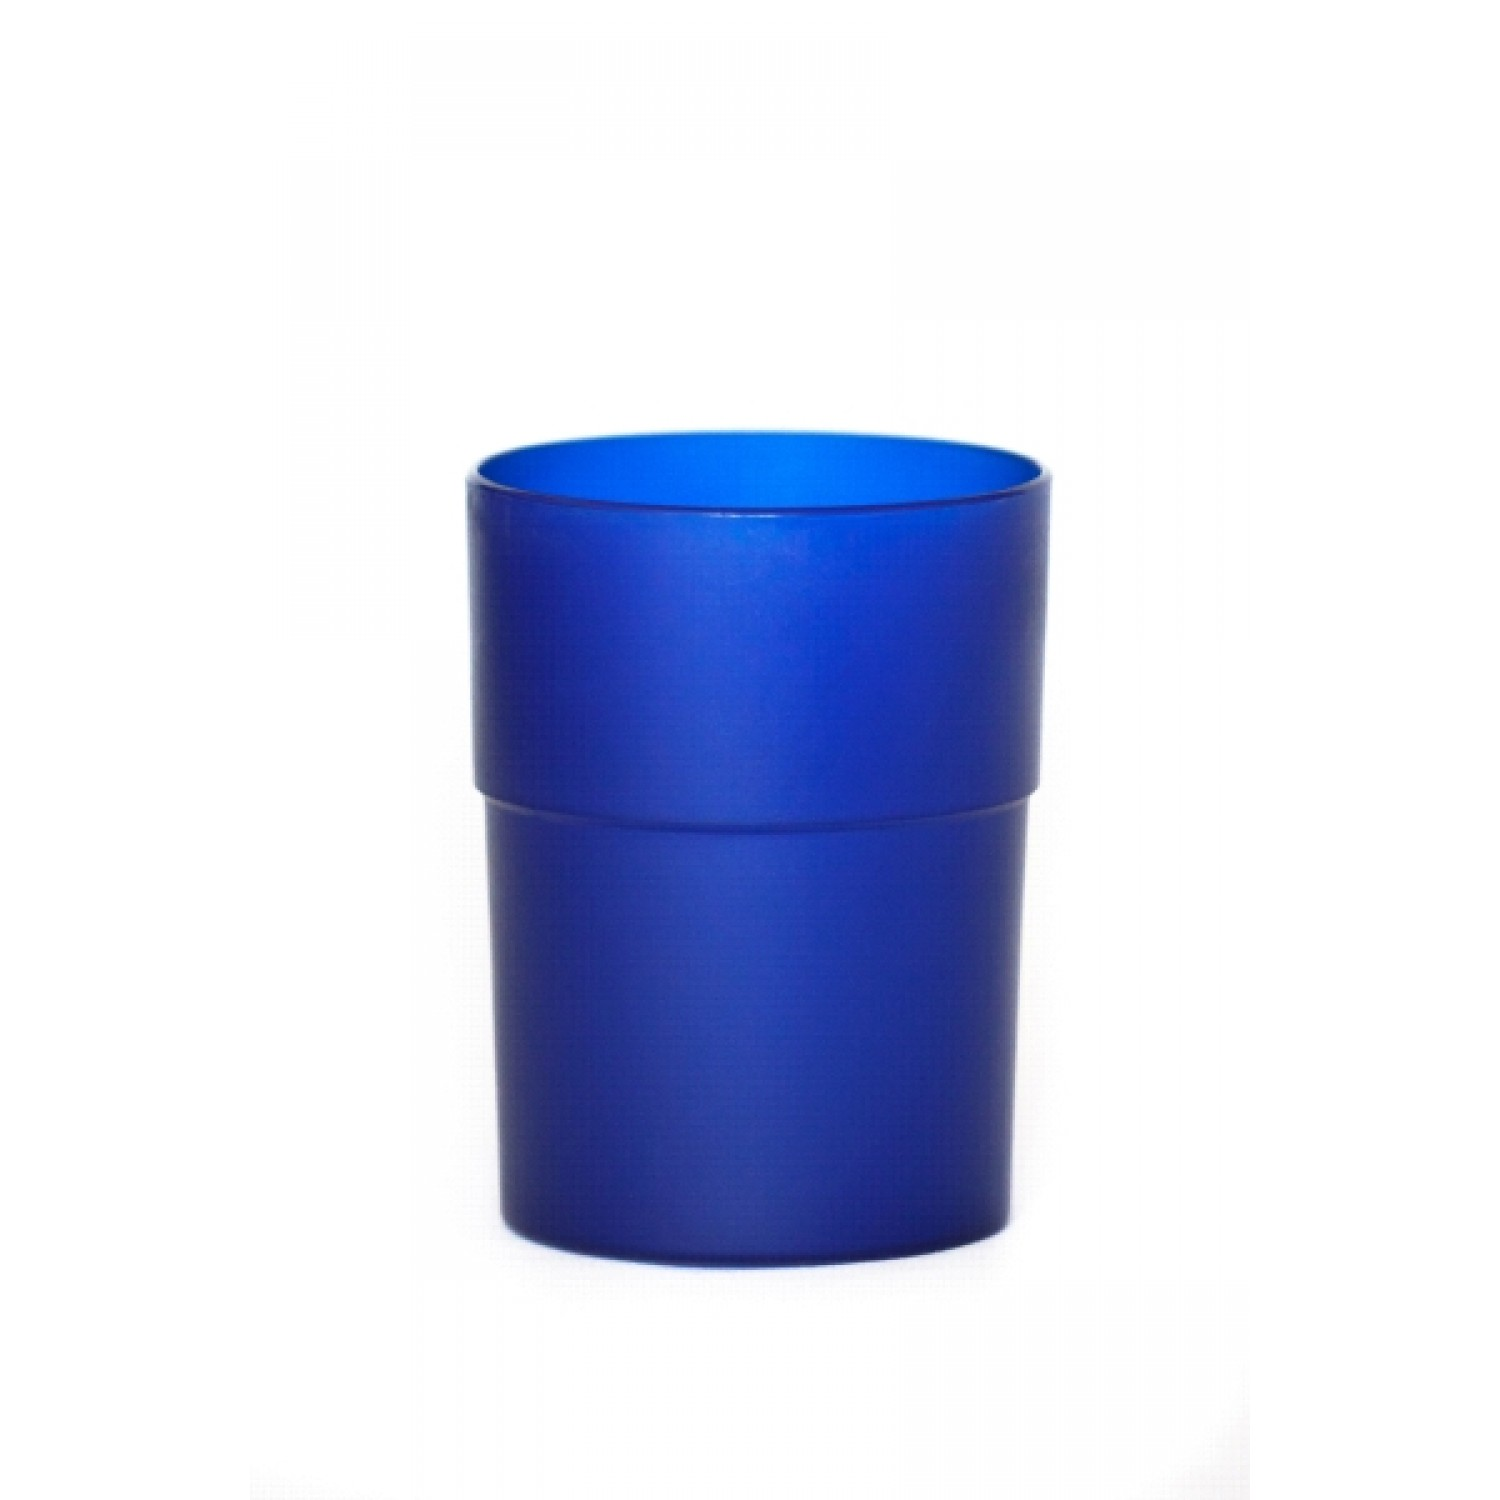 Cup made from bioplastics in blue – BPA-free